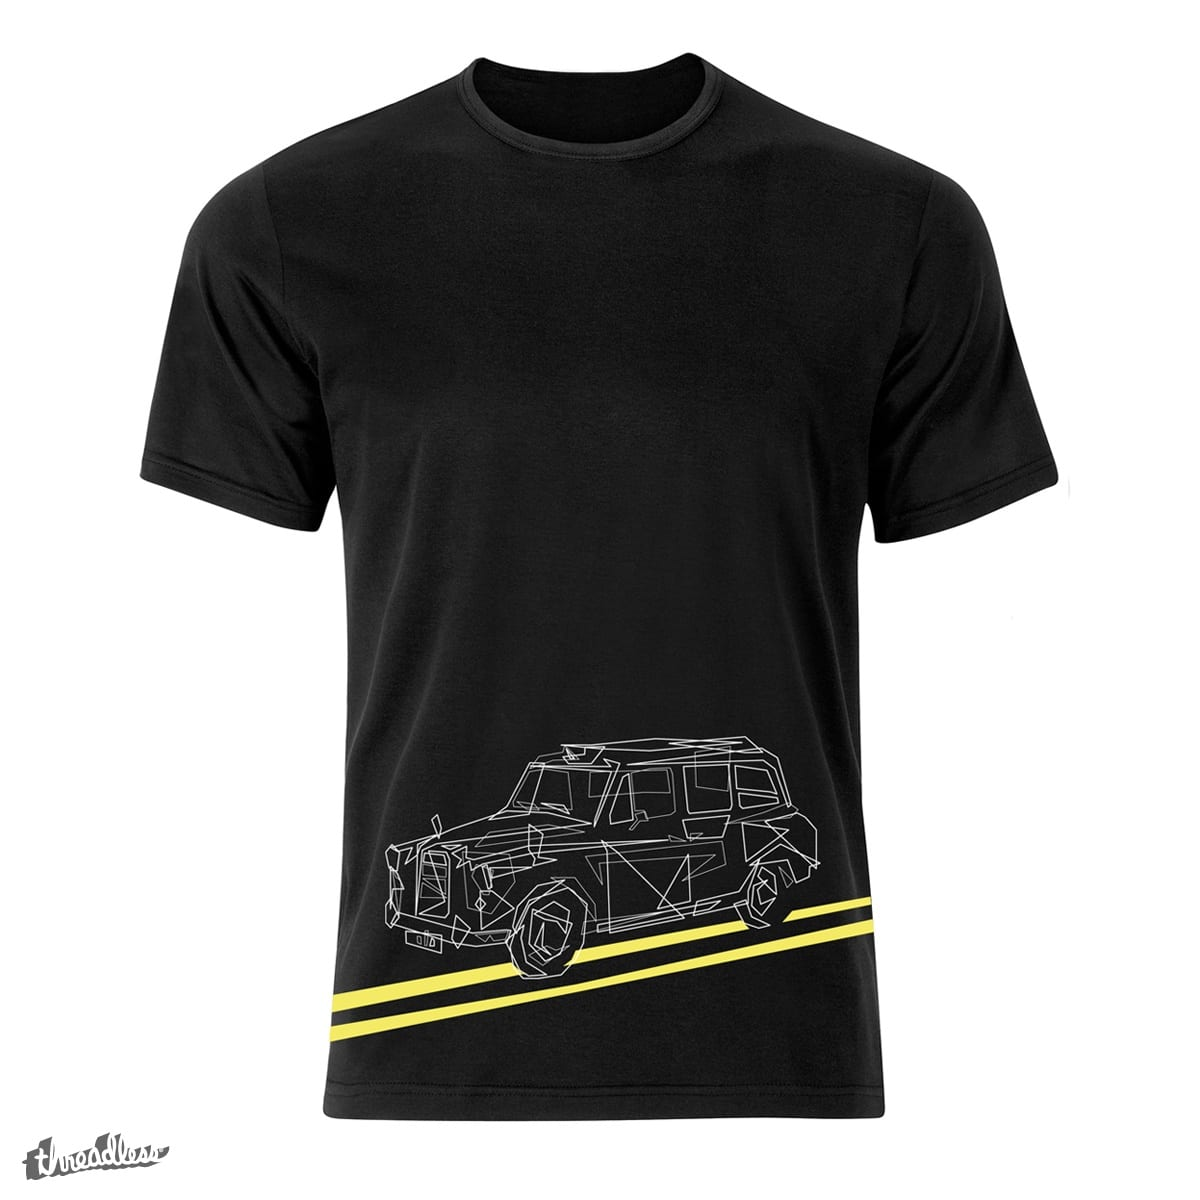 The London Cab by richardsbm on Threadless